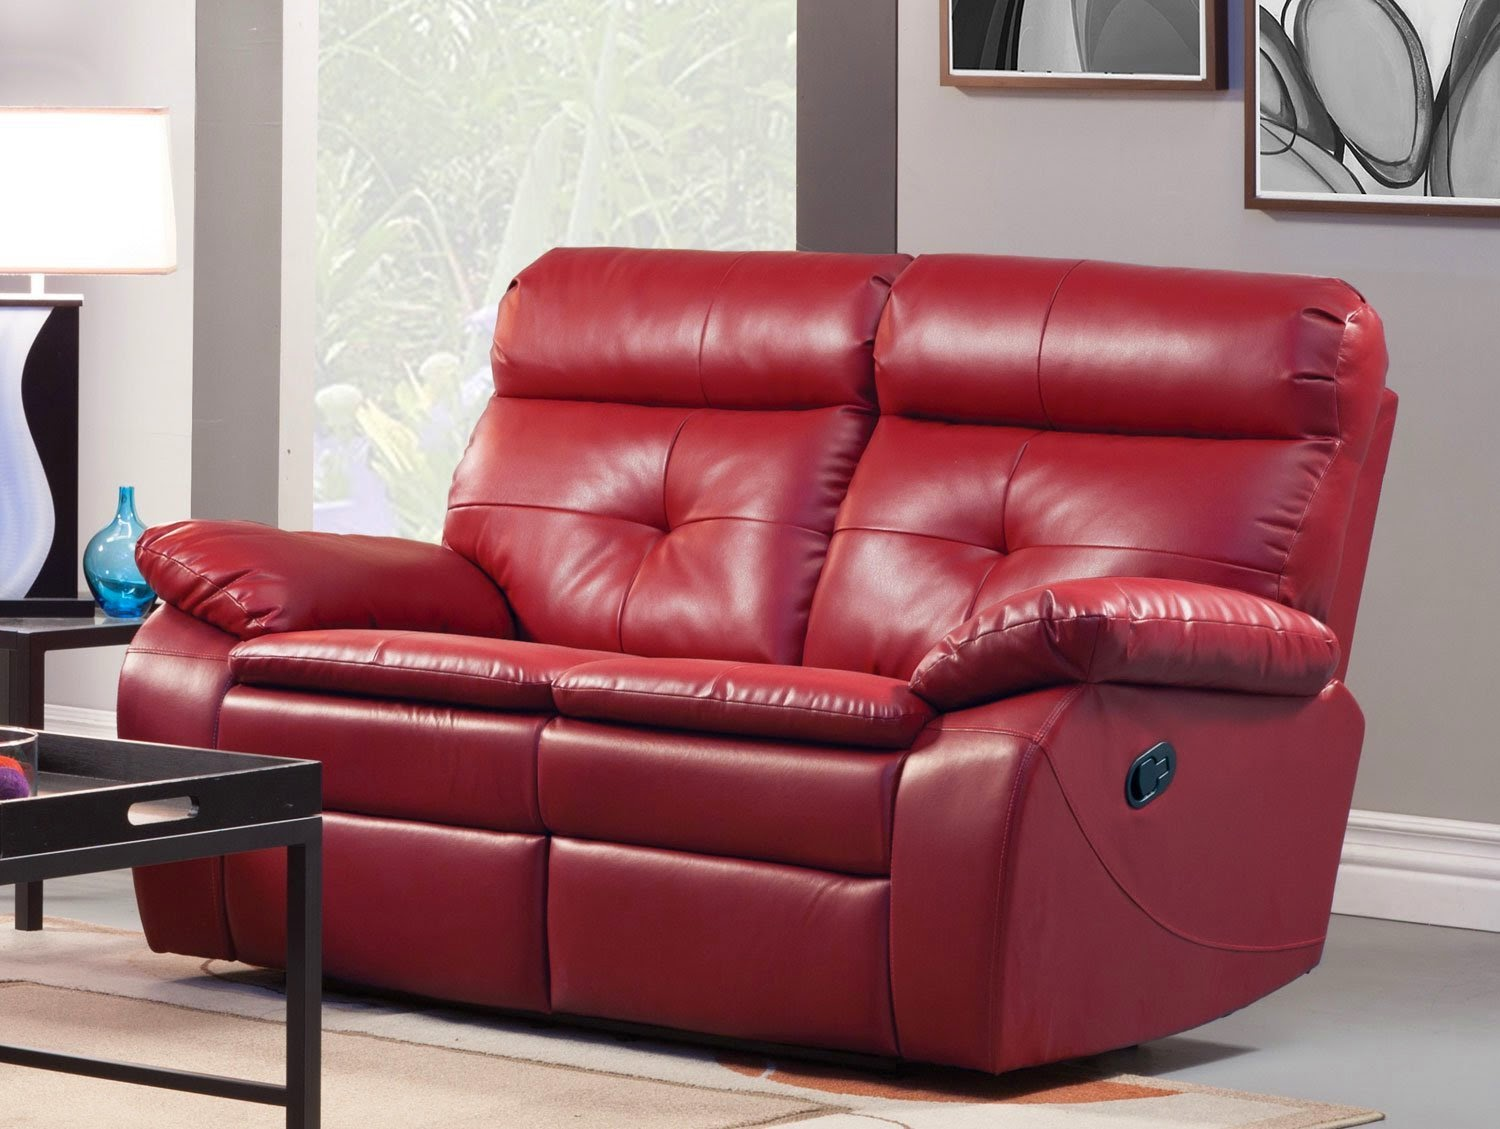 Recliner Sofas Leather Throw Covers For Cheap Reclining Sale 2 Seater Sofa